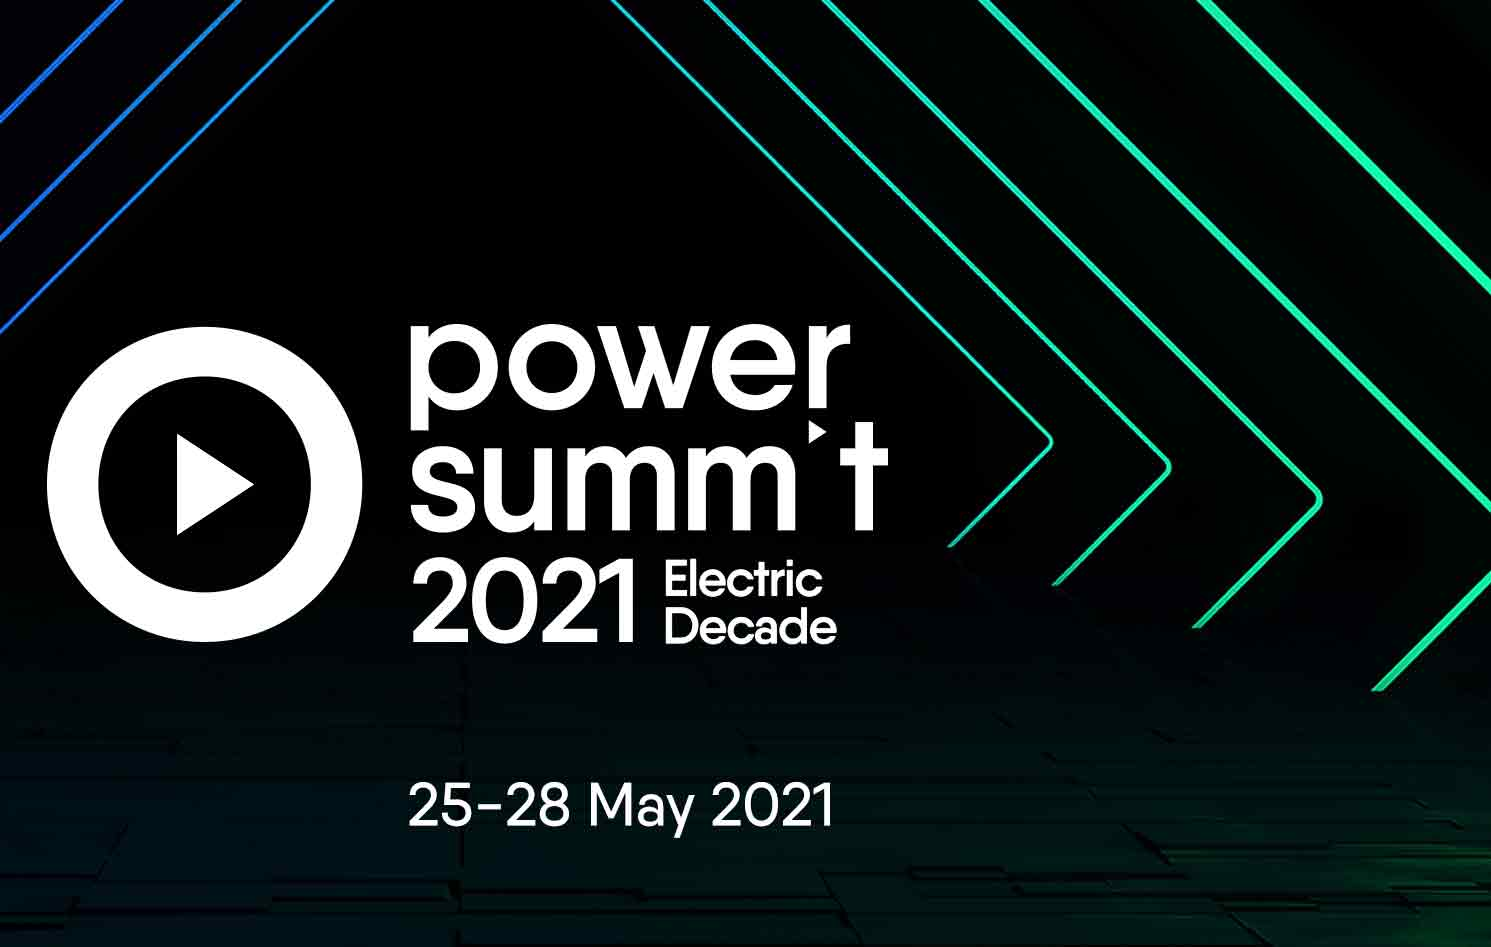 Power Summit 2021 Website Event V1